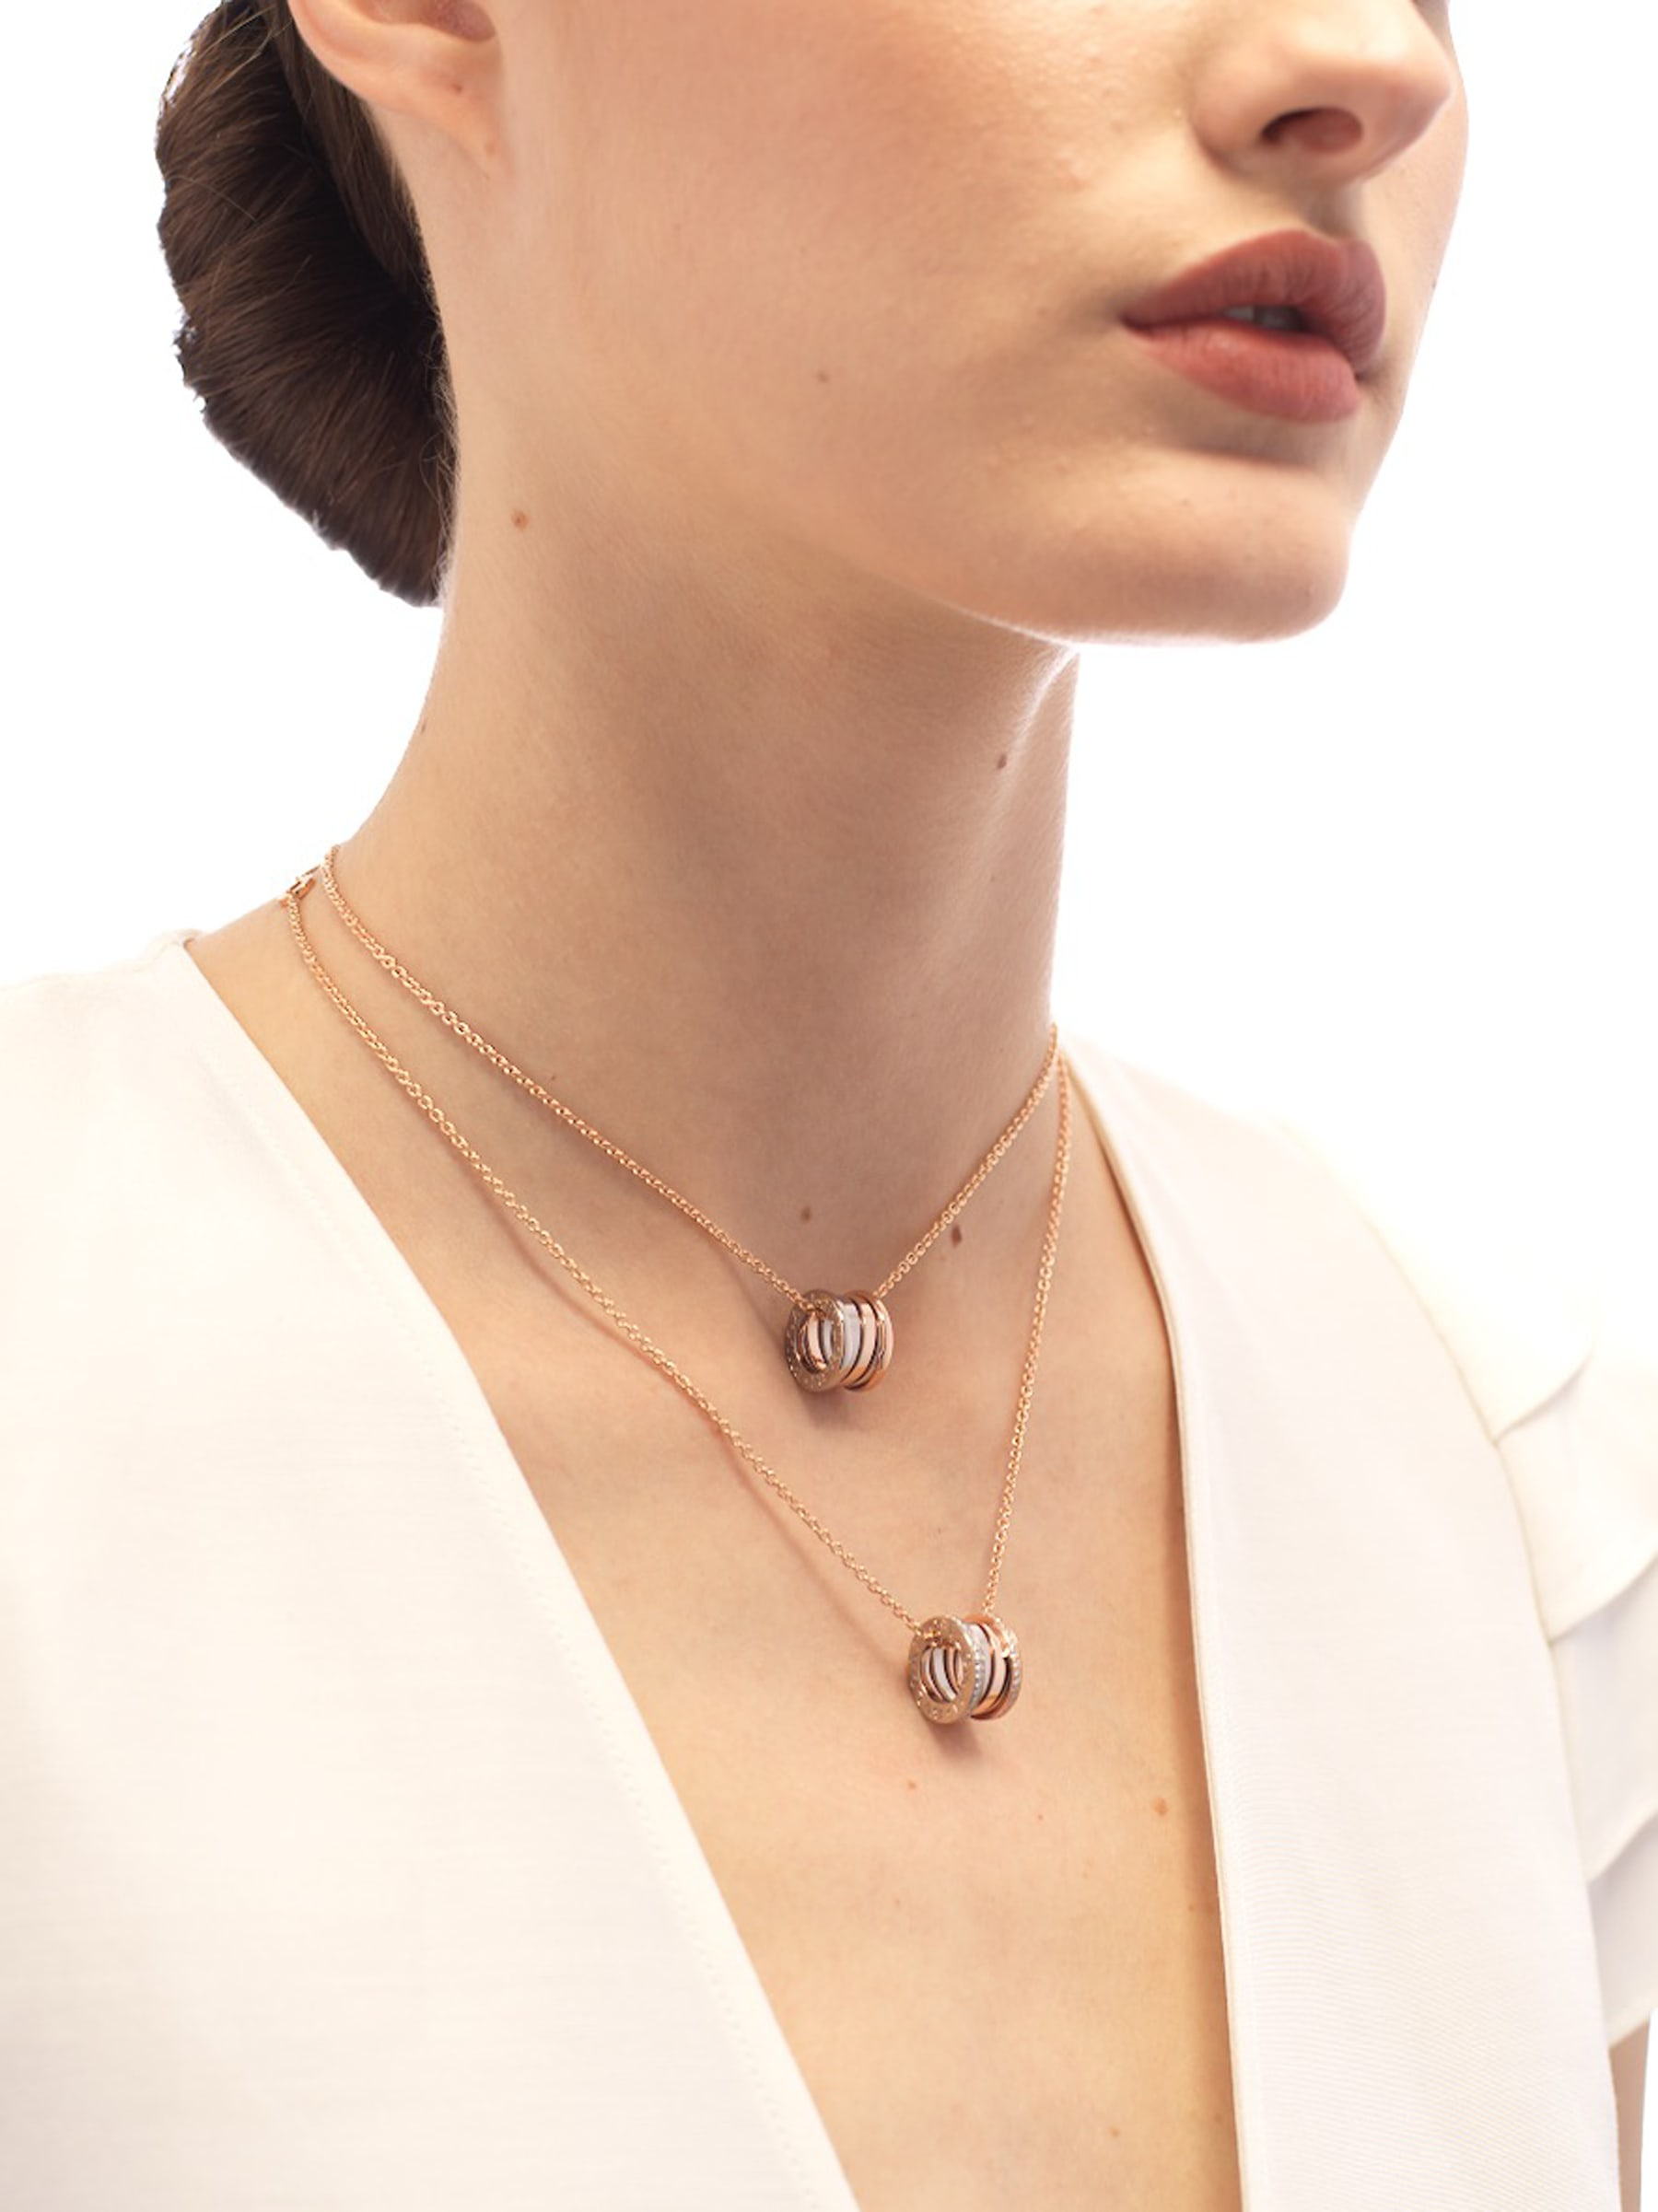 B.zero1 necklace with 18 kt rose and white gold pendant set with pavé diamonds (0.41 ct) on the edges and 18 kt rose gold chain. 355062 image 3